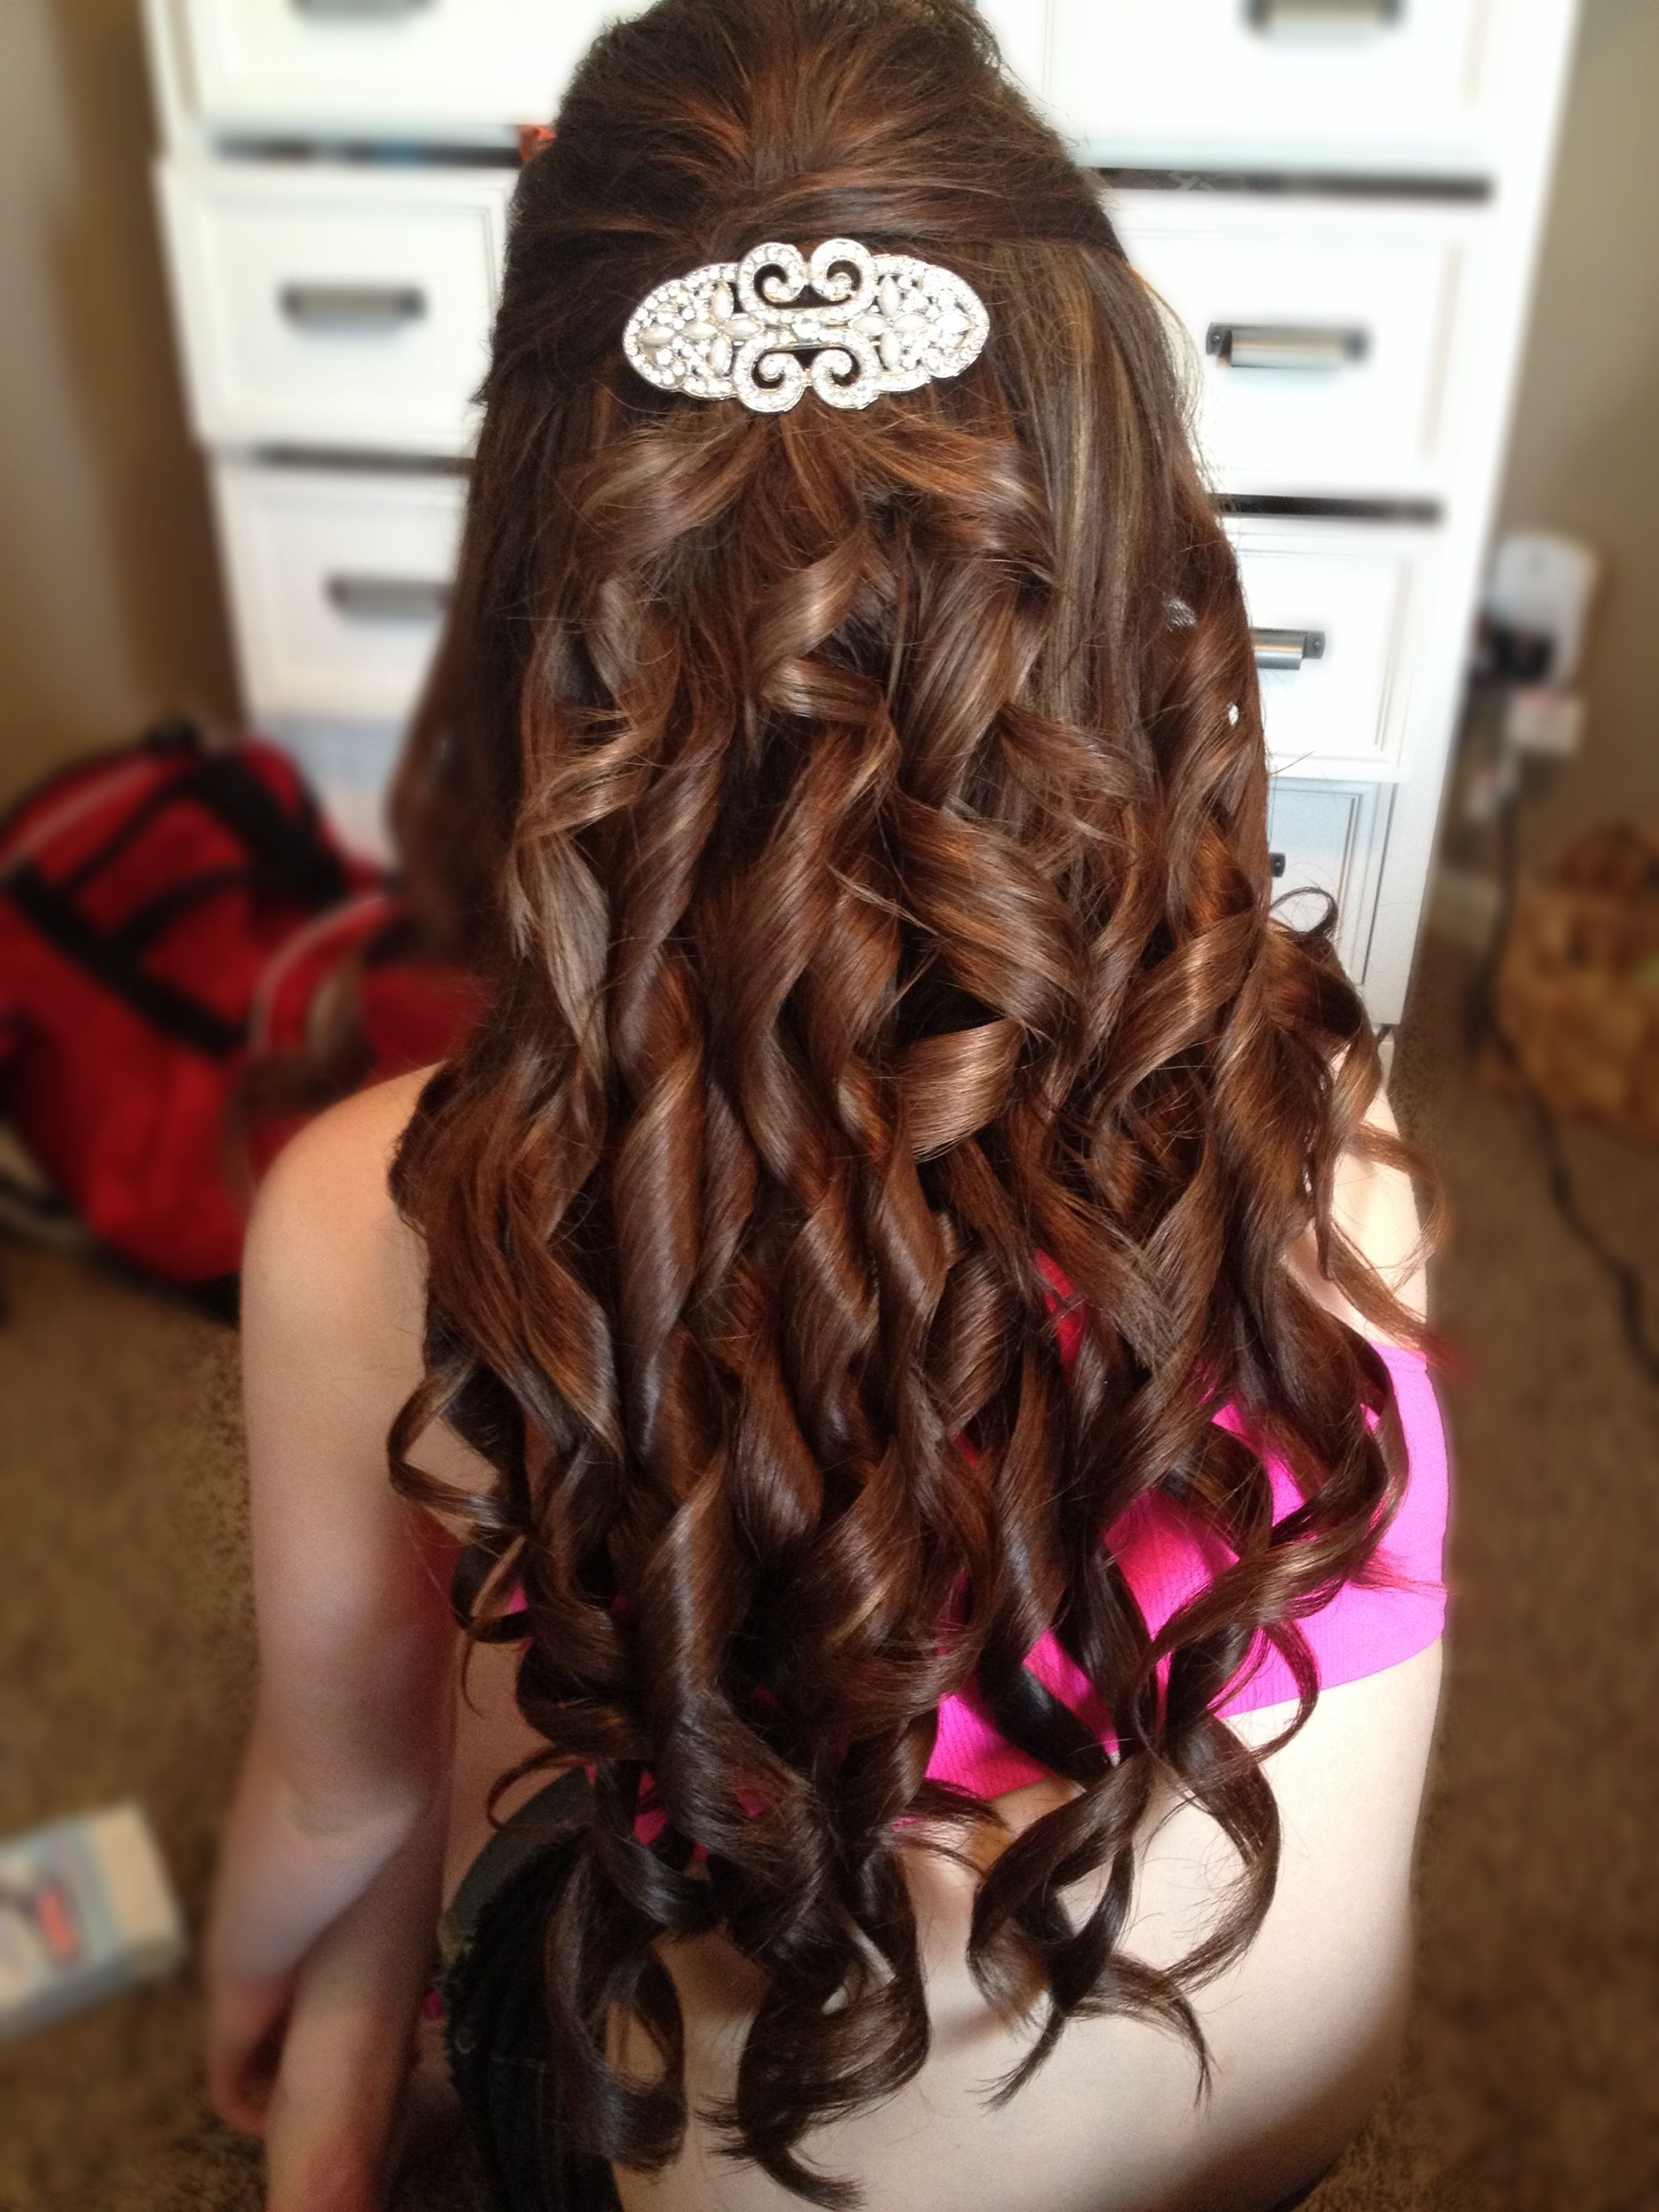 I did my friends hair for prom a really pretty half up half down